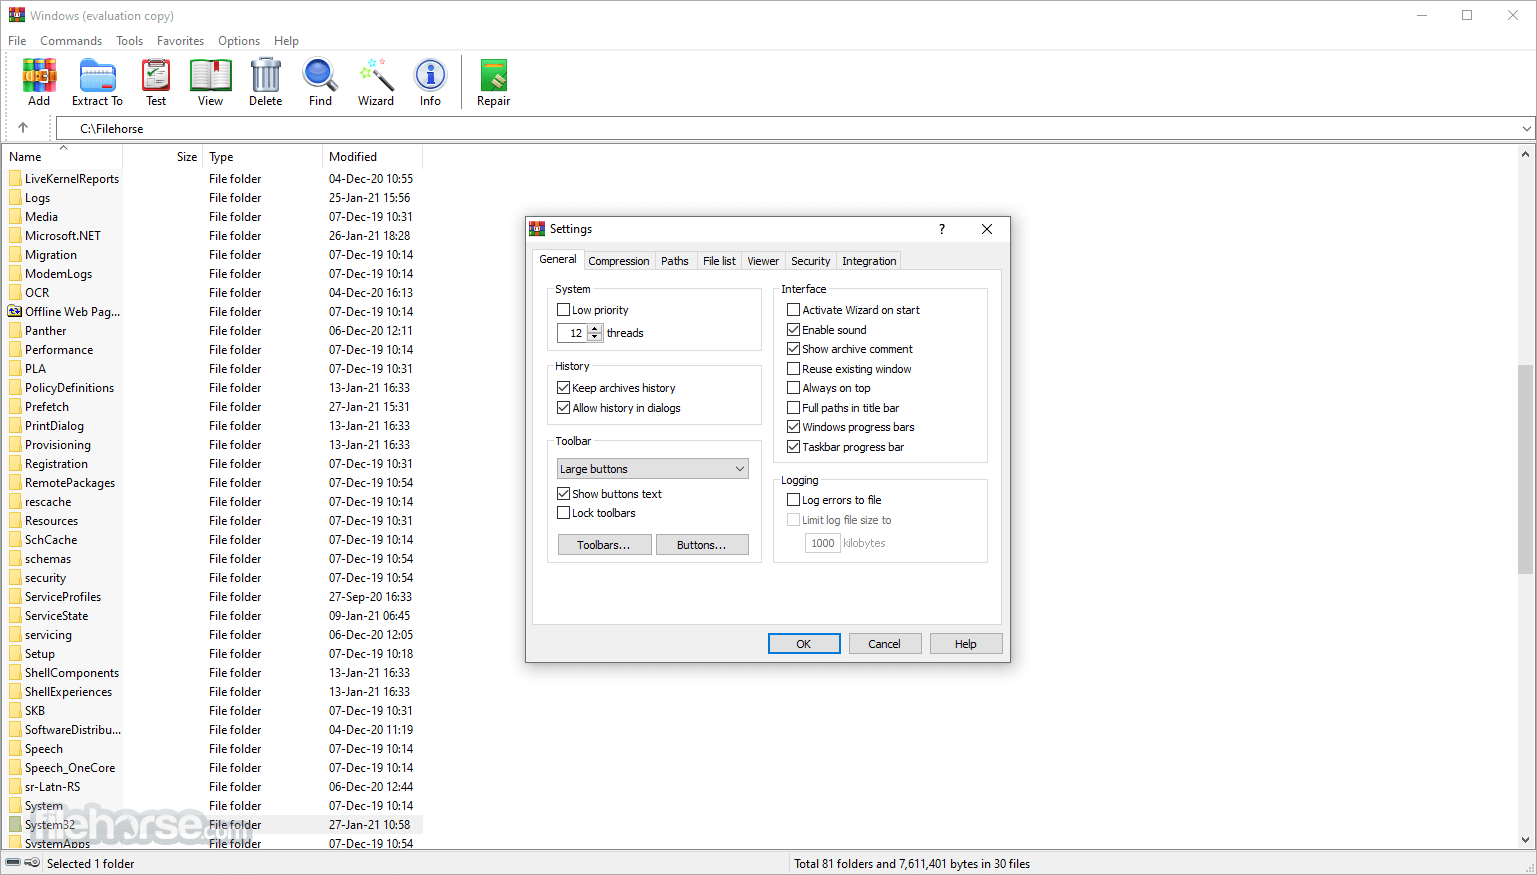 winrar setup for windows 7 64 bit